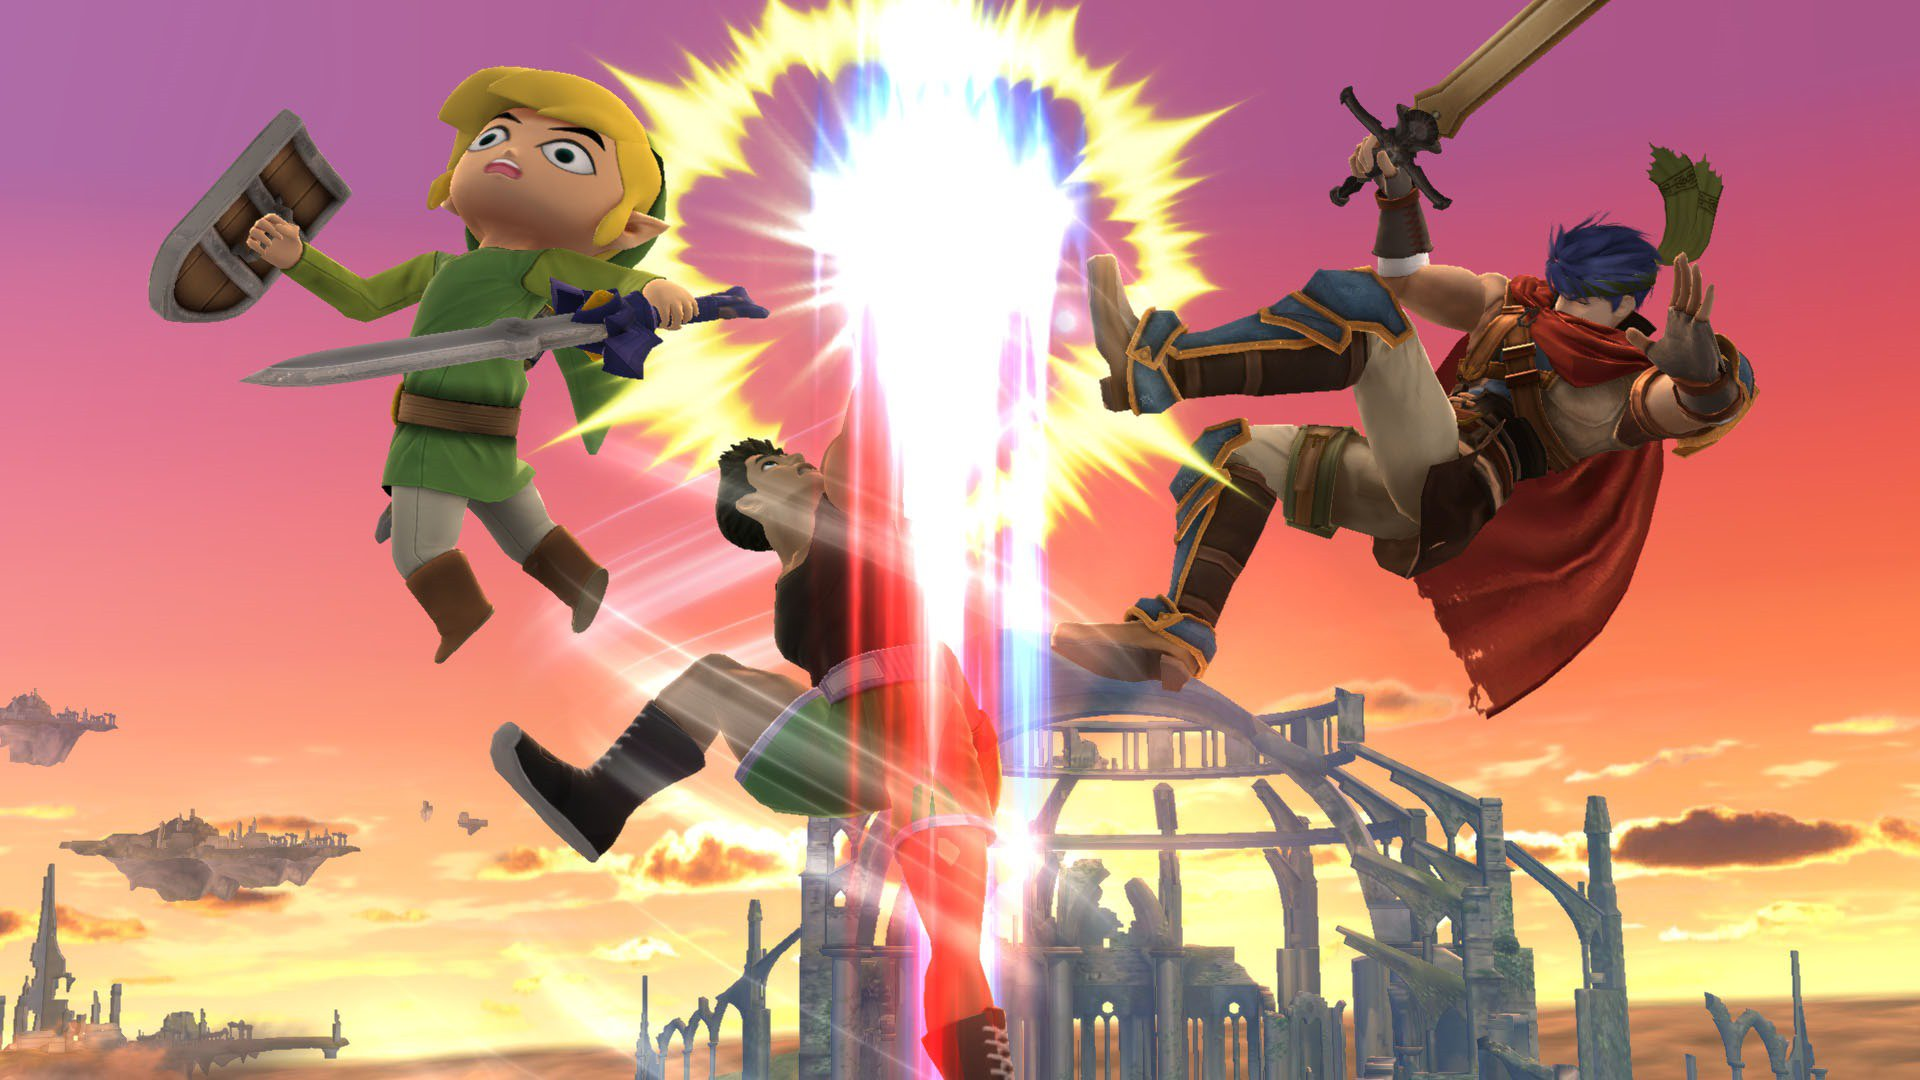 All new Super Smash Bros. screenshots show epic punch-ups